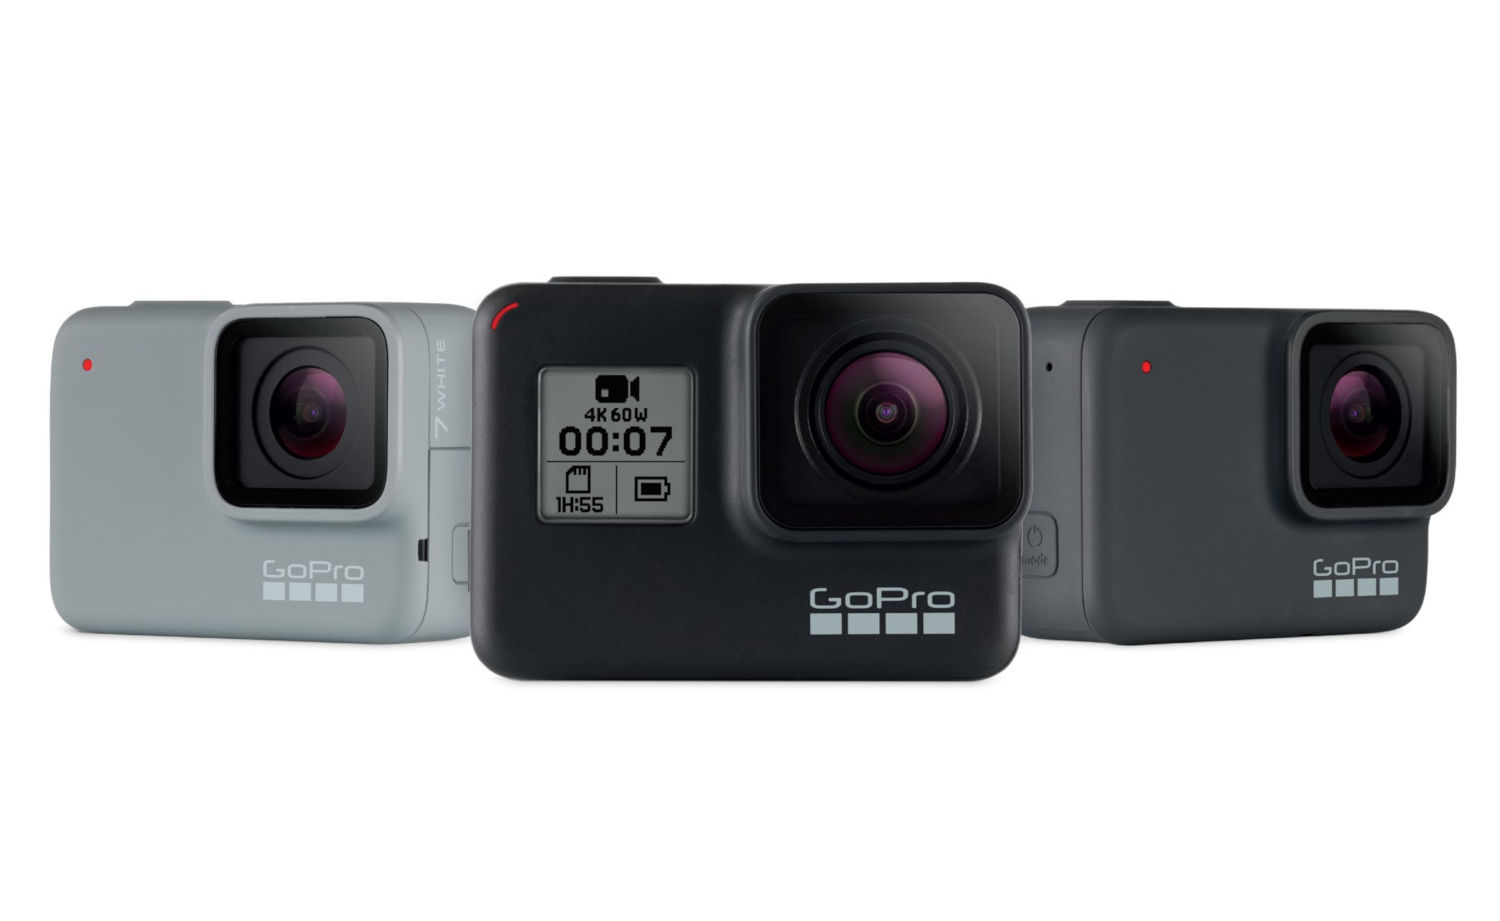 GoPro HERO7 Black with HyperSmooth Gimbal-like stabilization